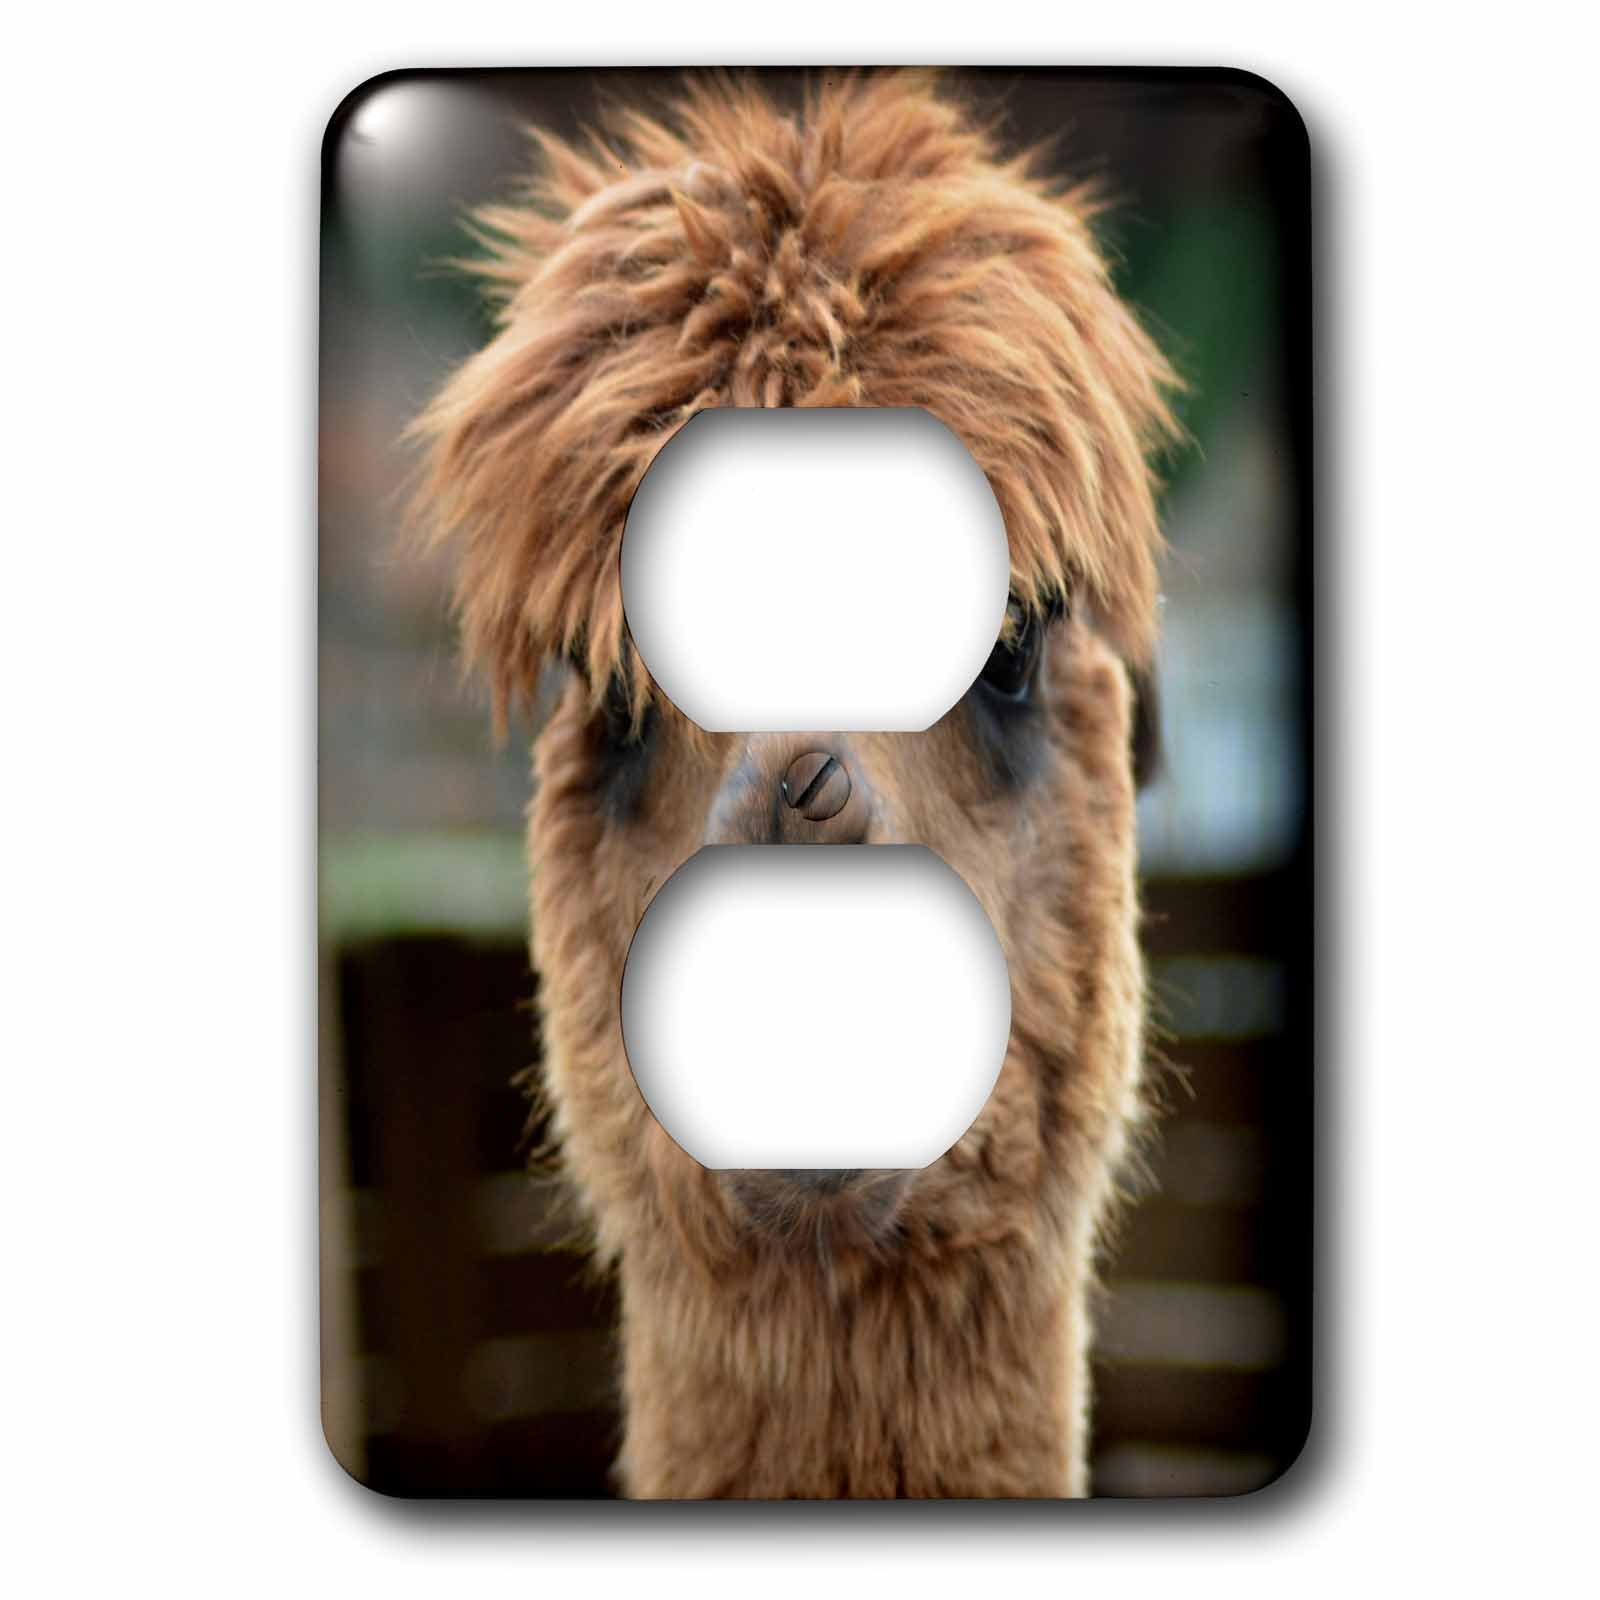 3dRose WhiteOaks Photography and Artwork - Lamas - Laughing Lama is a photo of a lama showing its teeth as if laughing - Light Switch Covers - 2 plug outlet cover (lsp_265335_6)